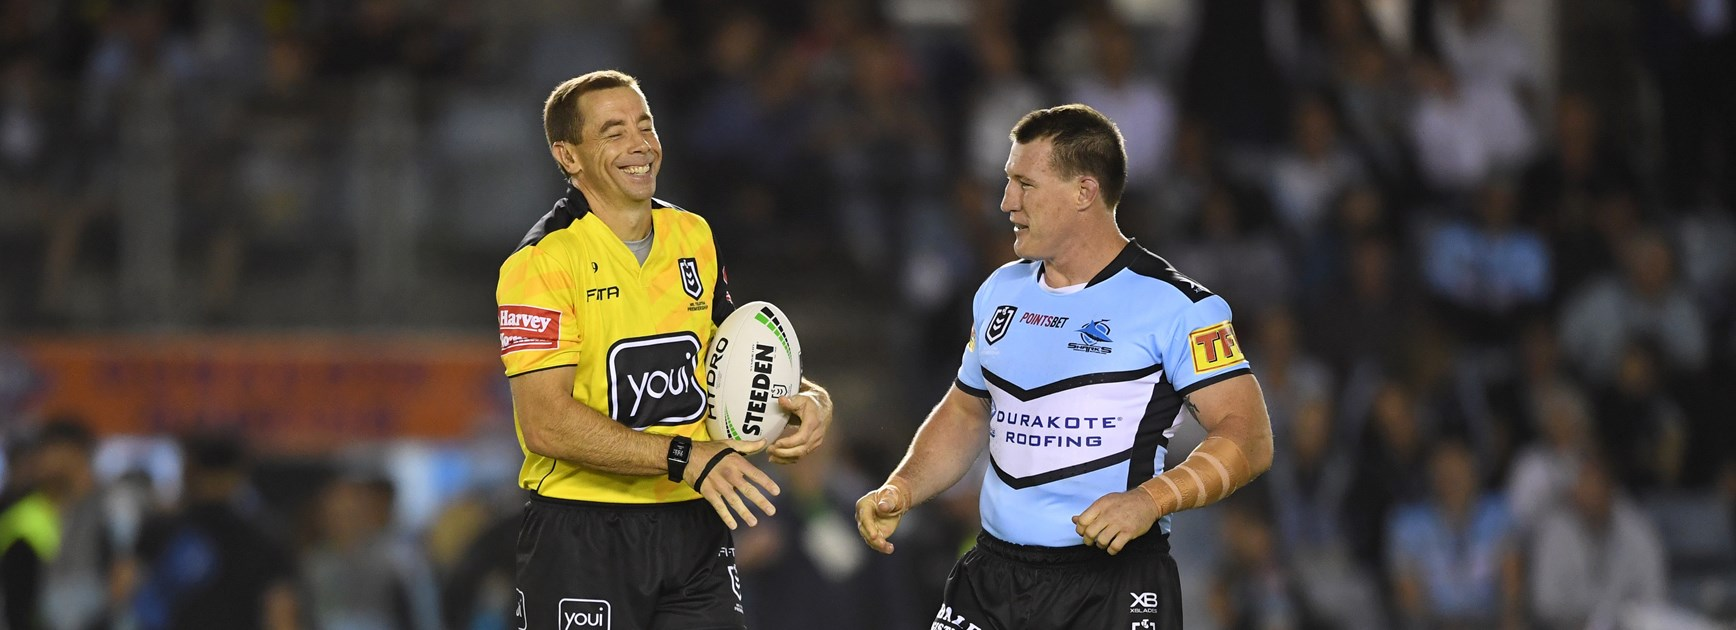 NRL announces rule changes for scrums, challenge system, trainers, 20/40 kick